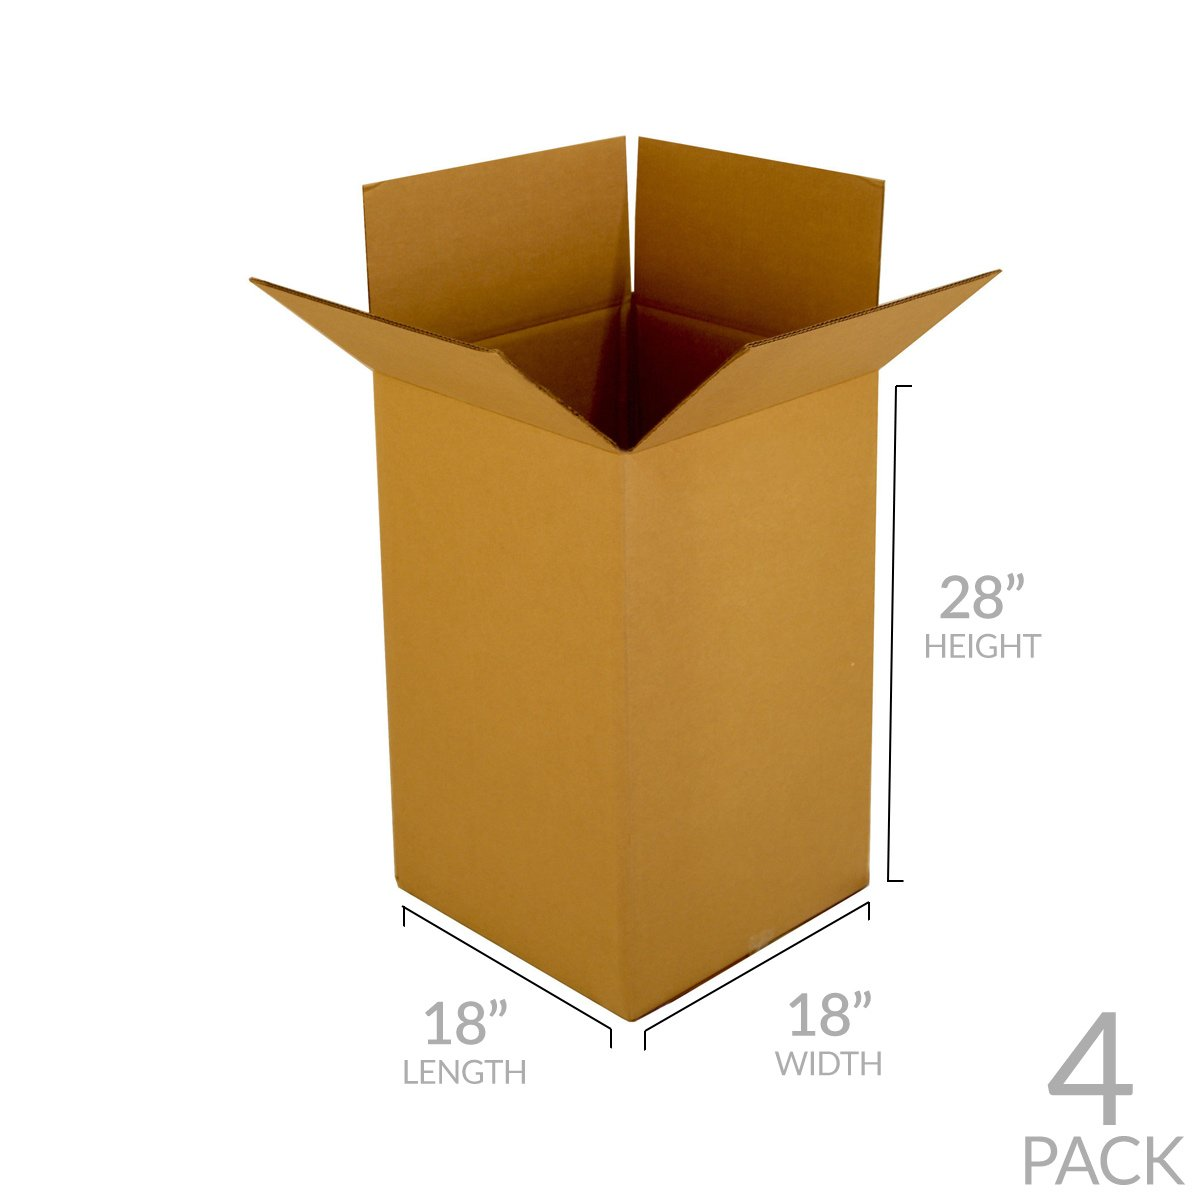 UBOXES Kitchen Moving Boxes (4 Pack) Double Wall 18x18x28'' Heavy Duty Boxes